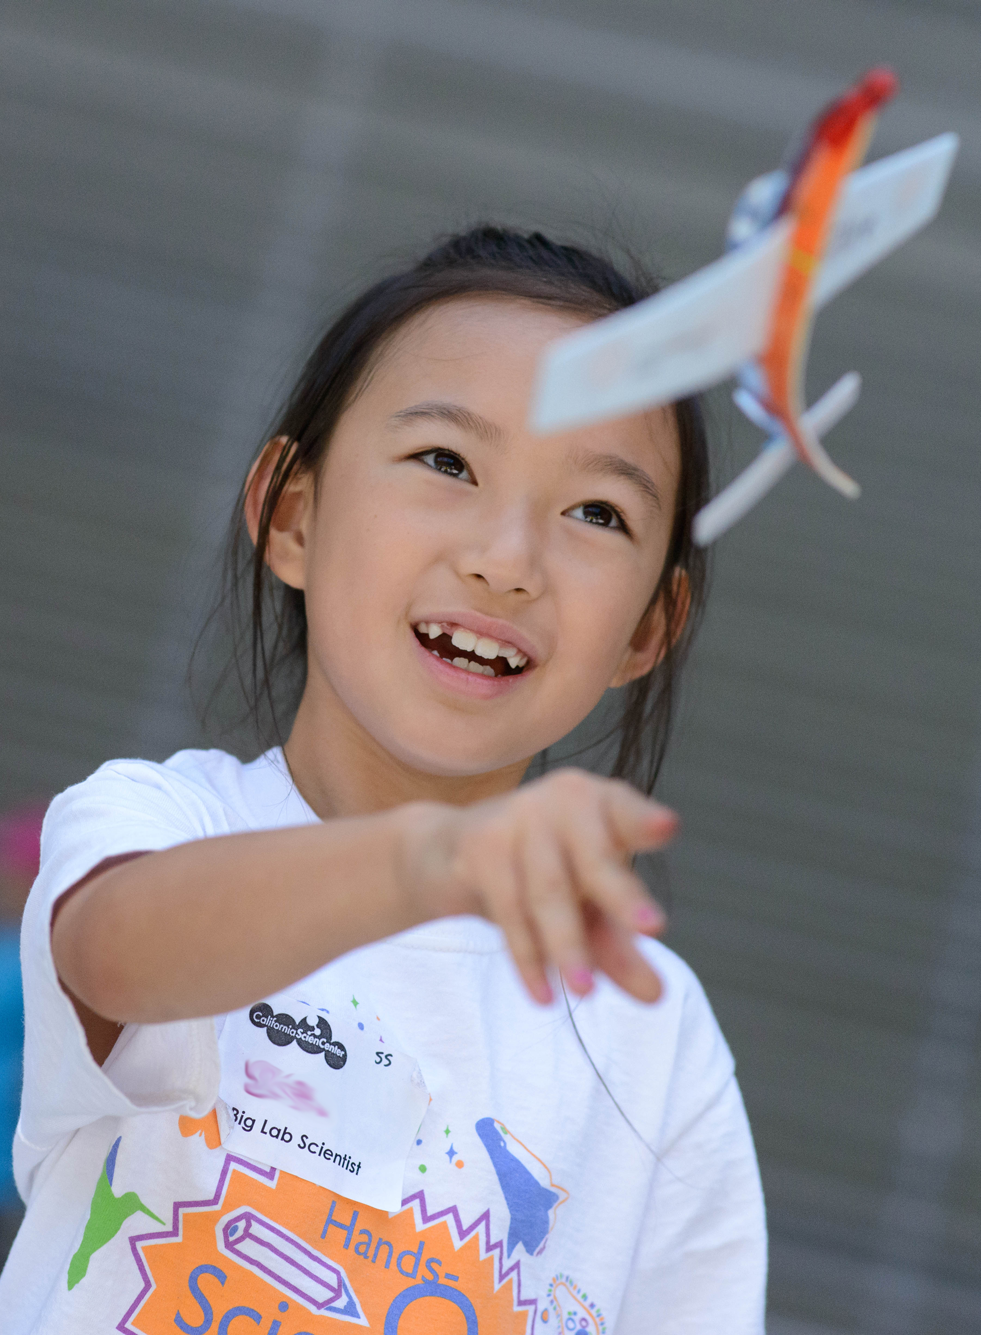 Girl throwing plane, while attending Hands-On Science Camp